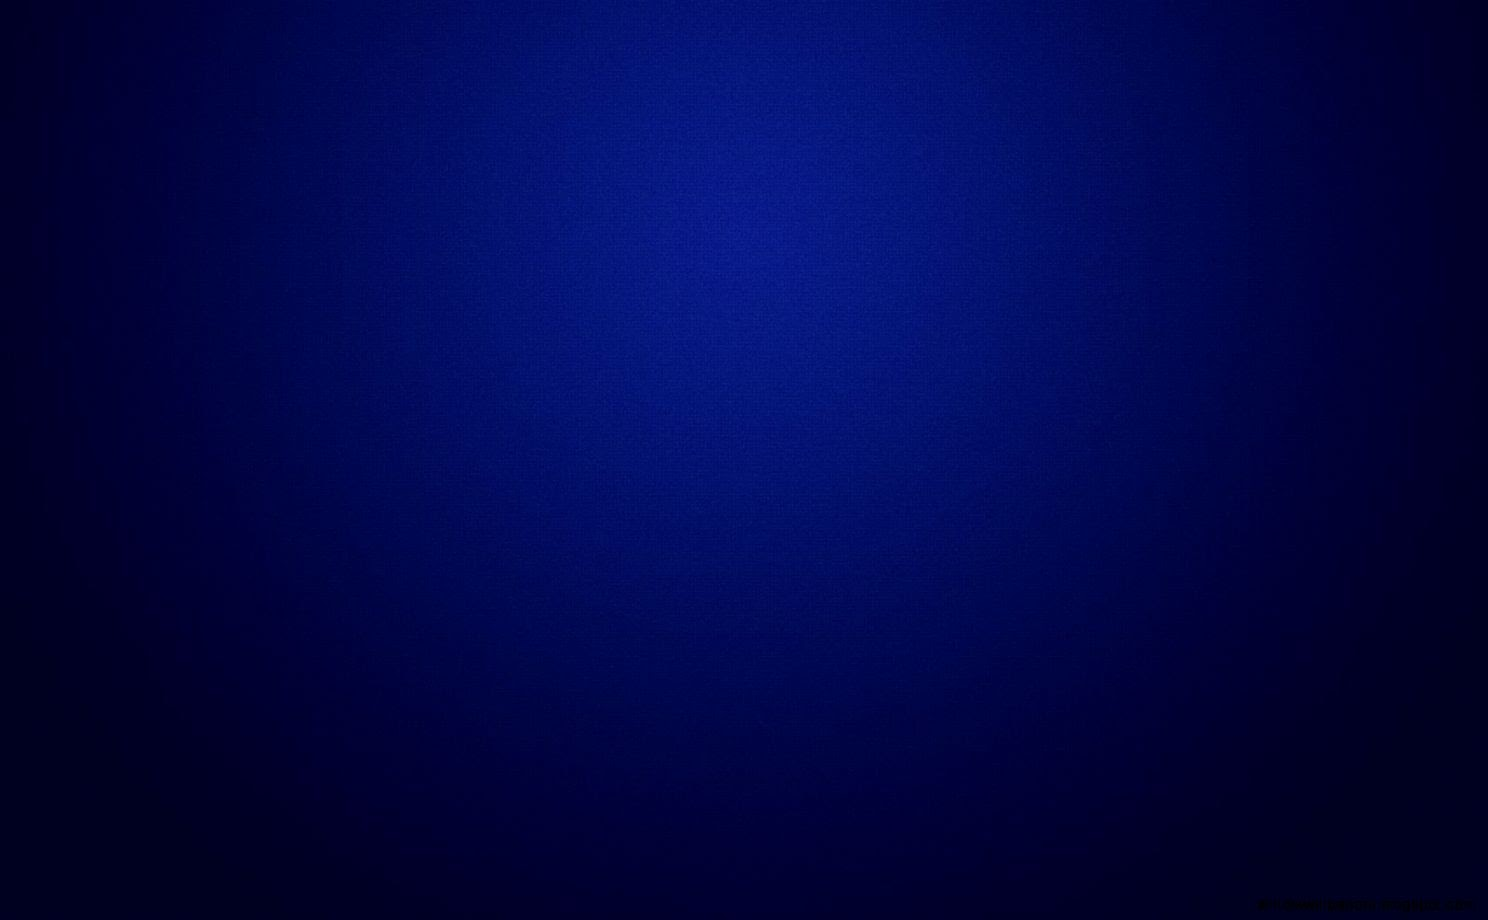 Dark Blue Wallpaper For Android | All HD Wallpapers